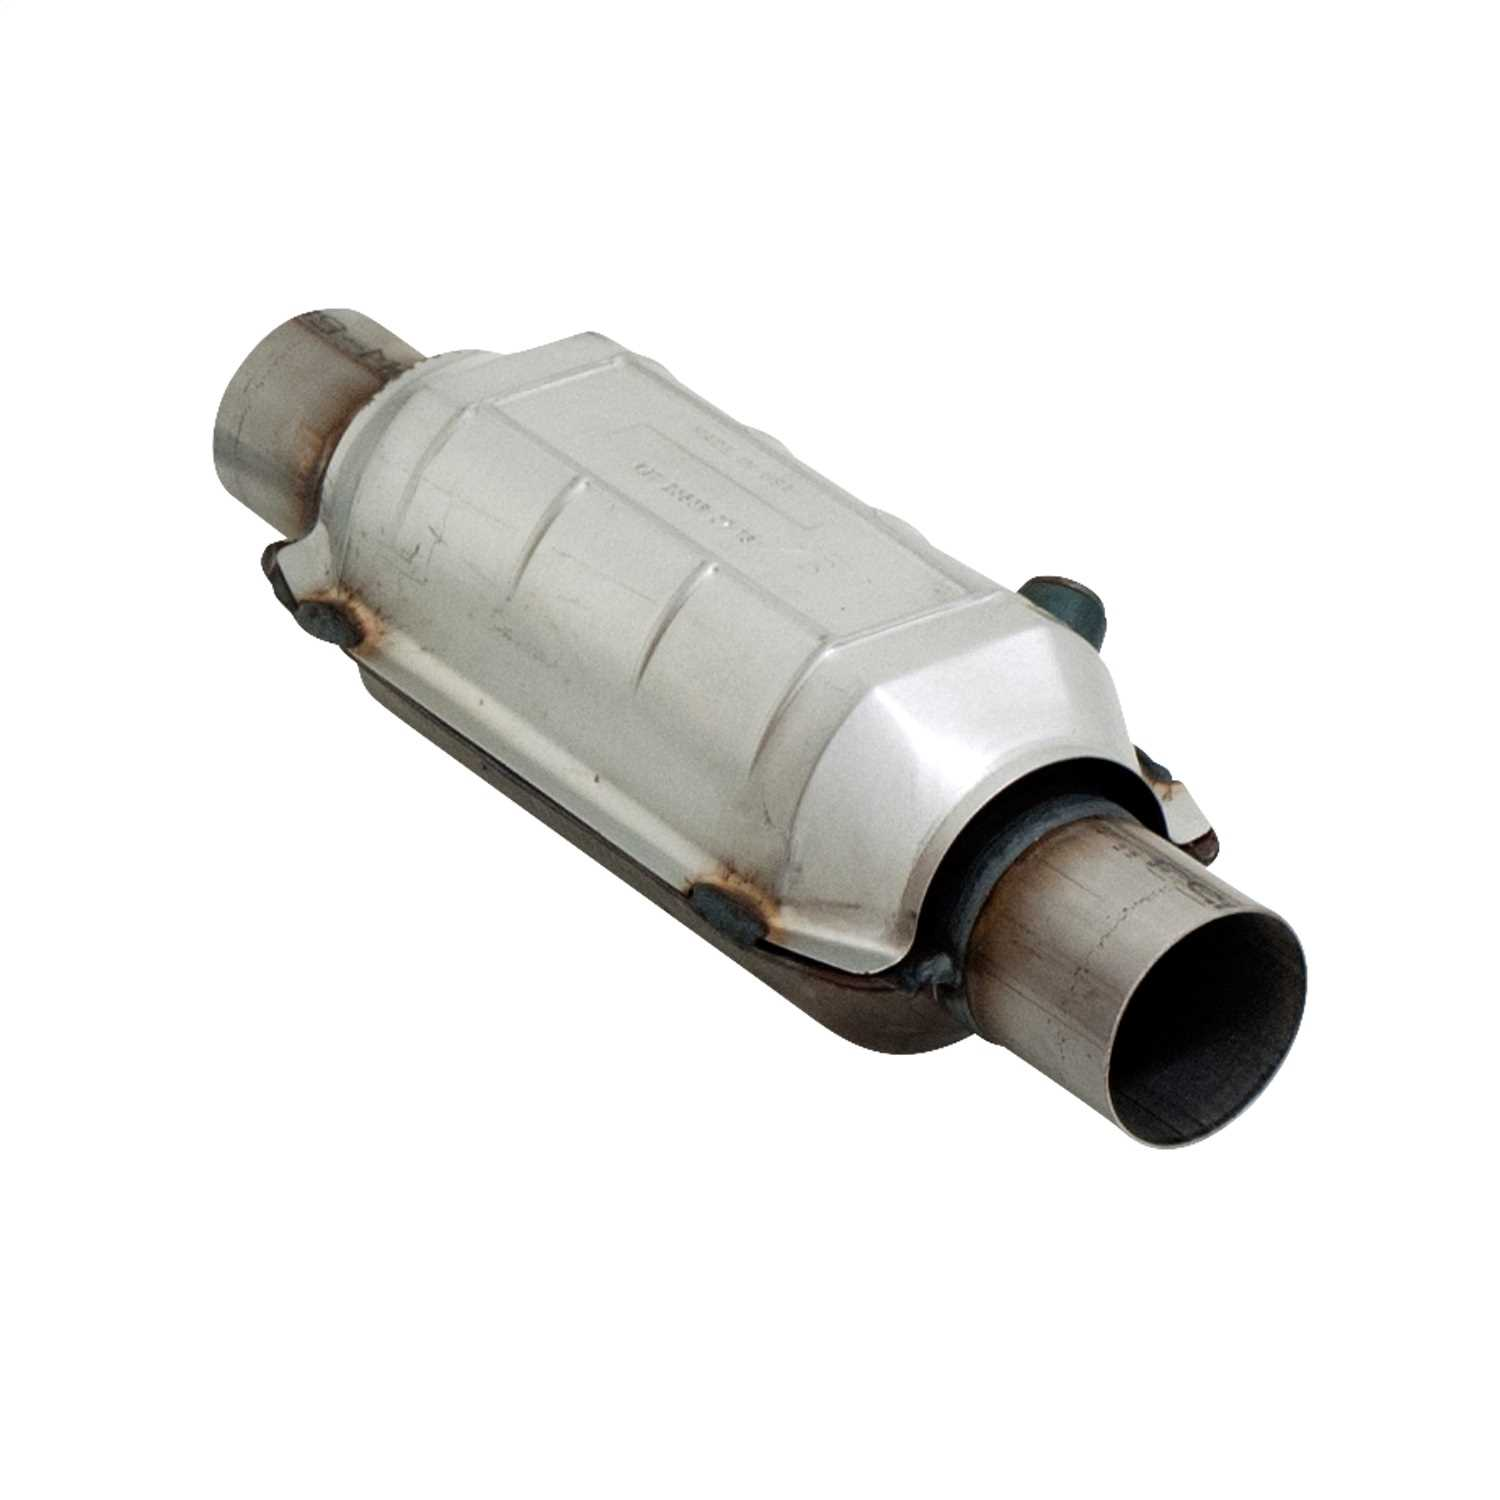 2821120 Flowmaster 49 State Catalytic Converters Universal Catalytic Converter